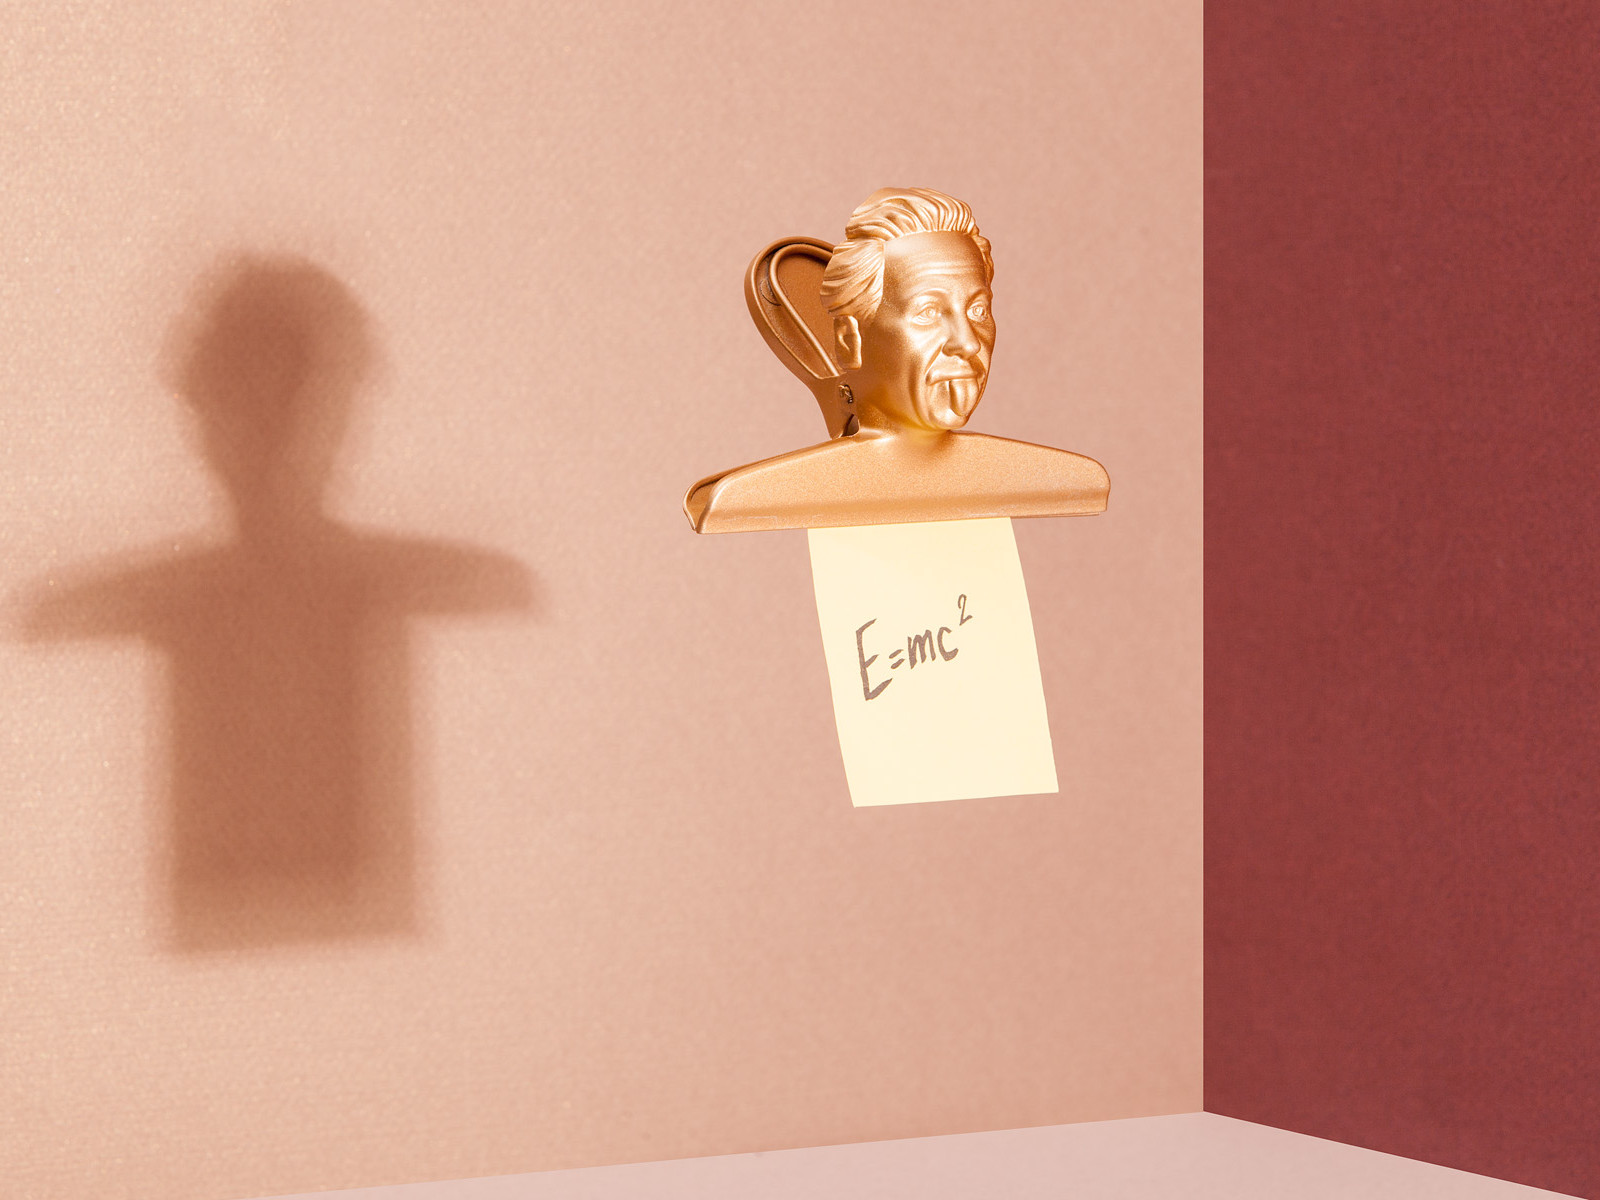 Art direction by Barcelona-based Folch for product design company DOIY